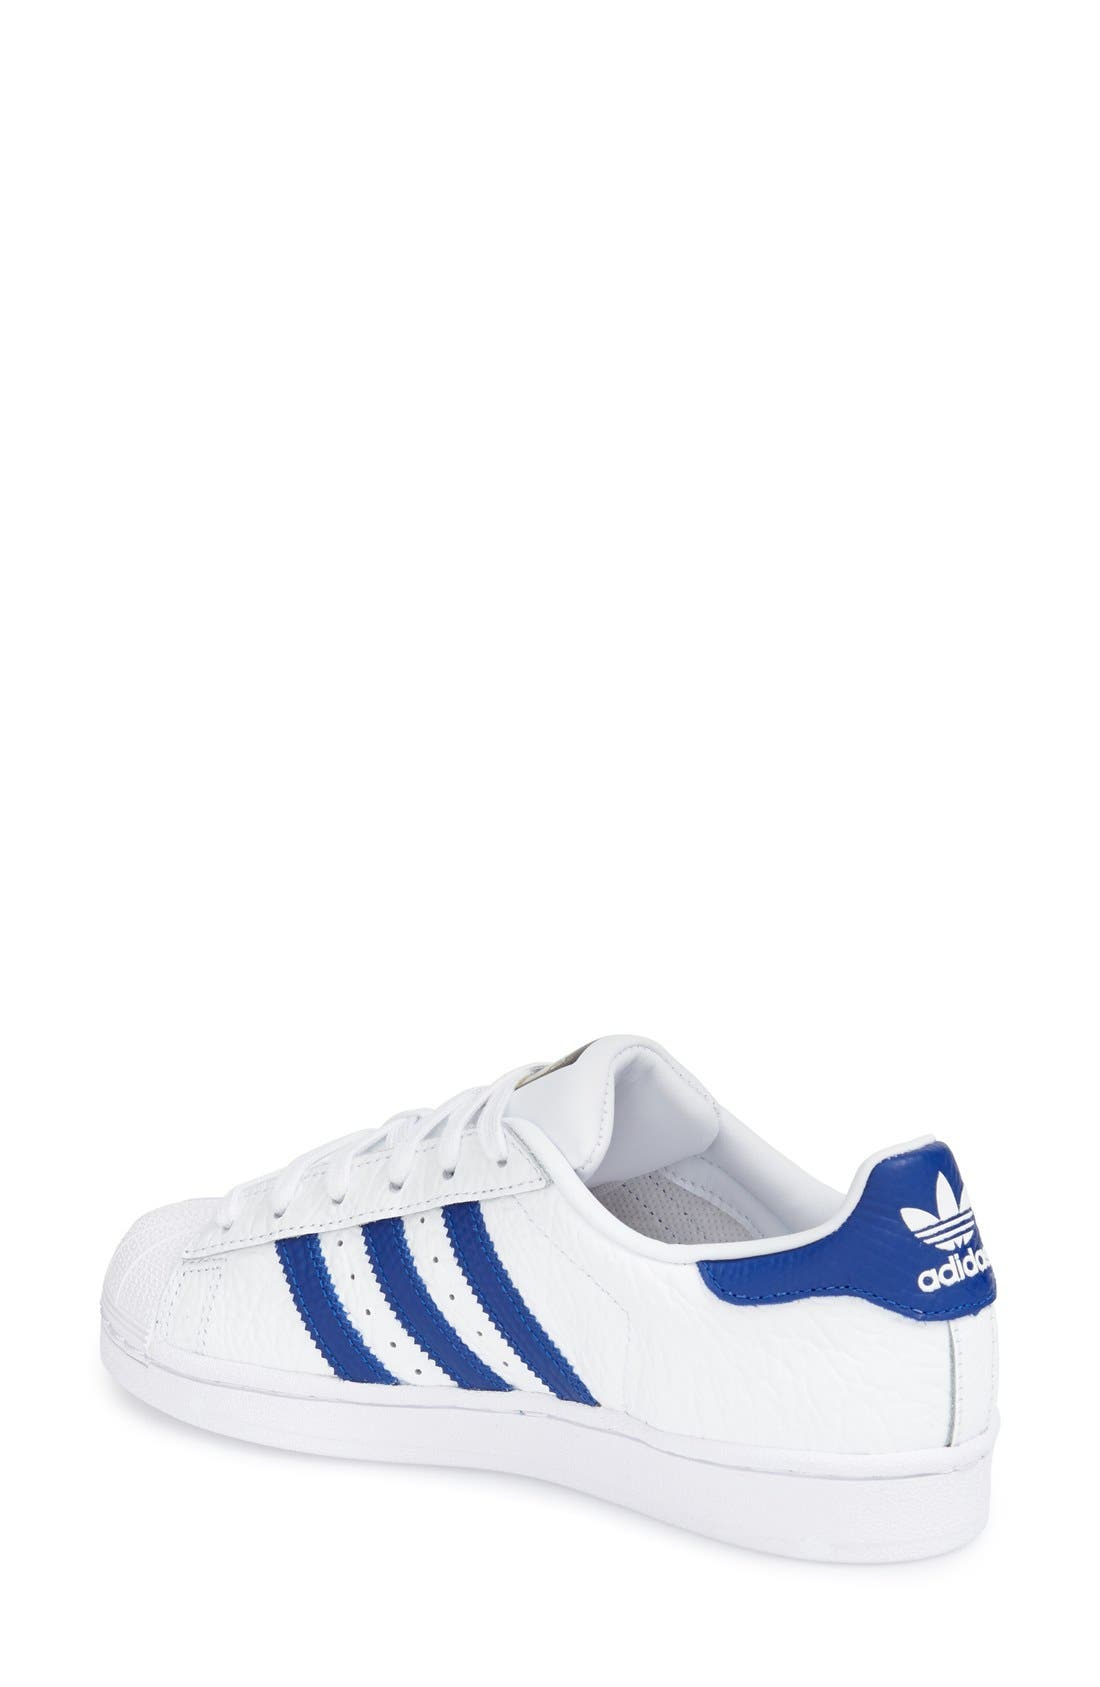 ADIDAS, 'Superstar' Sneaker, Alternate thumbnail 3, color, 106